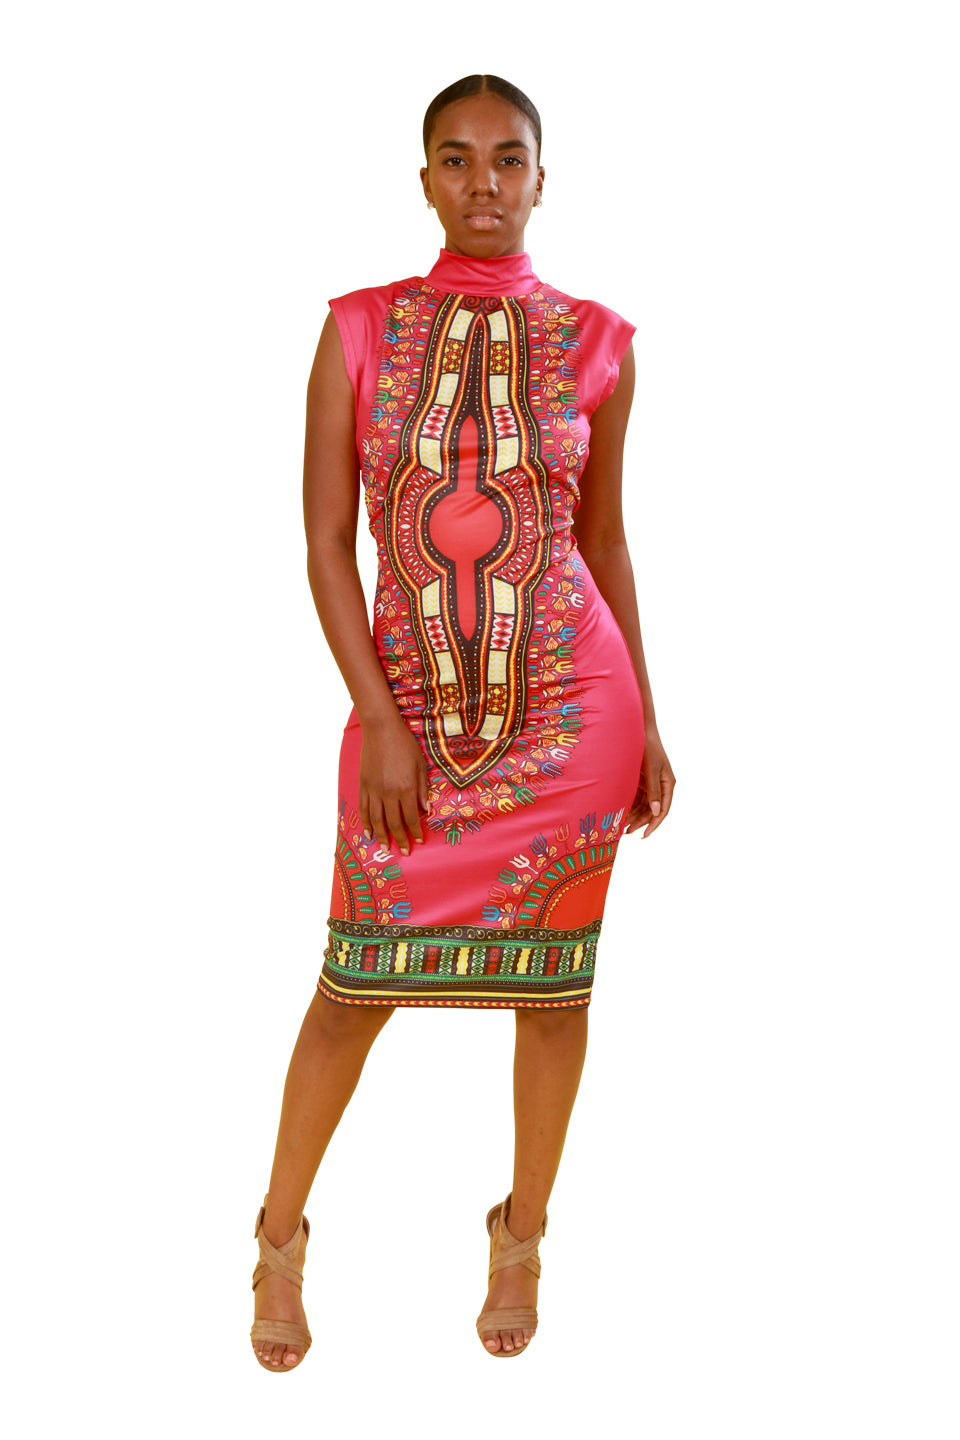 Pink Fitted Dashiki Dress - Dress Nolafrique African Print Dress